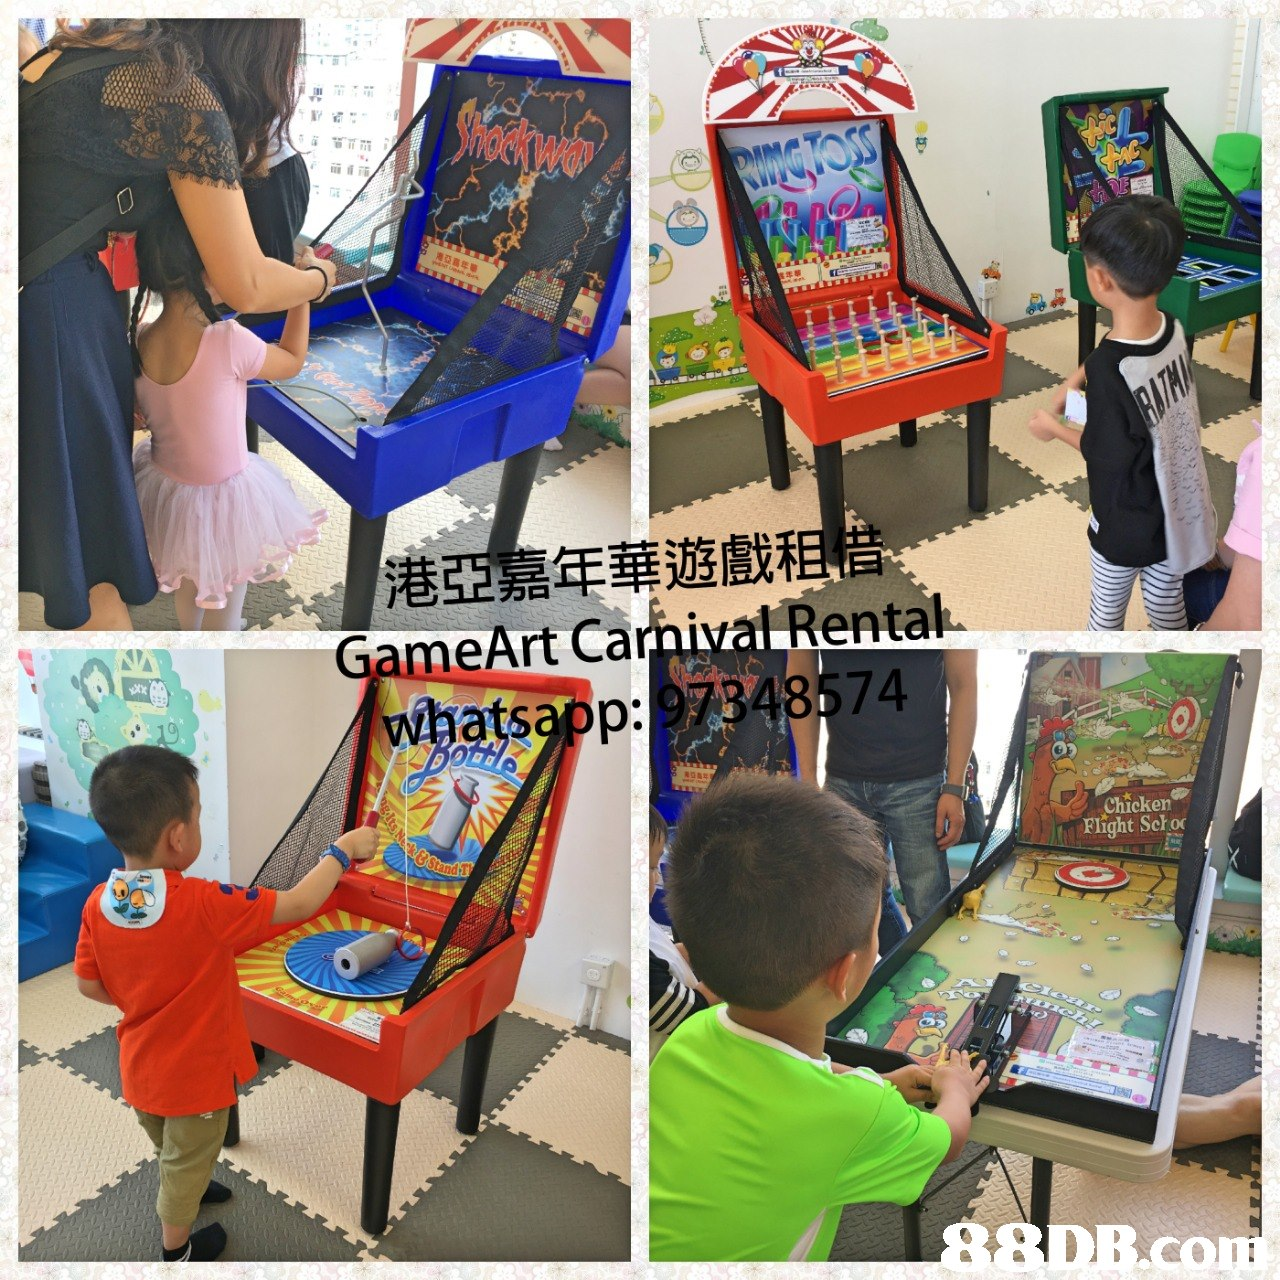 港亞嘉年華遊戲租 昔 GameArt Carhival RentaL atsapp:97348574 Chicken Flight Schoo  Games,Play,Table,Easel,Recreation